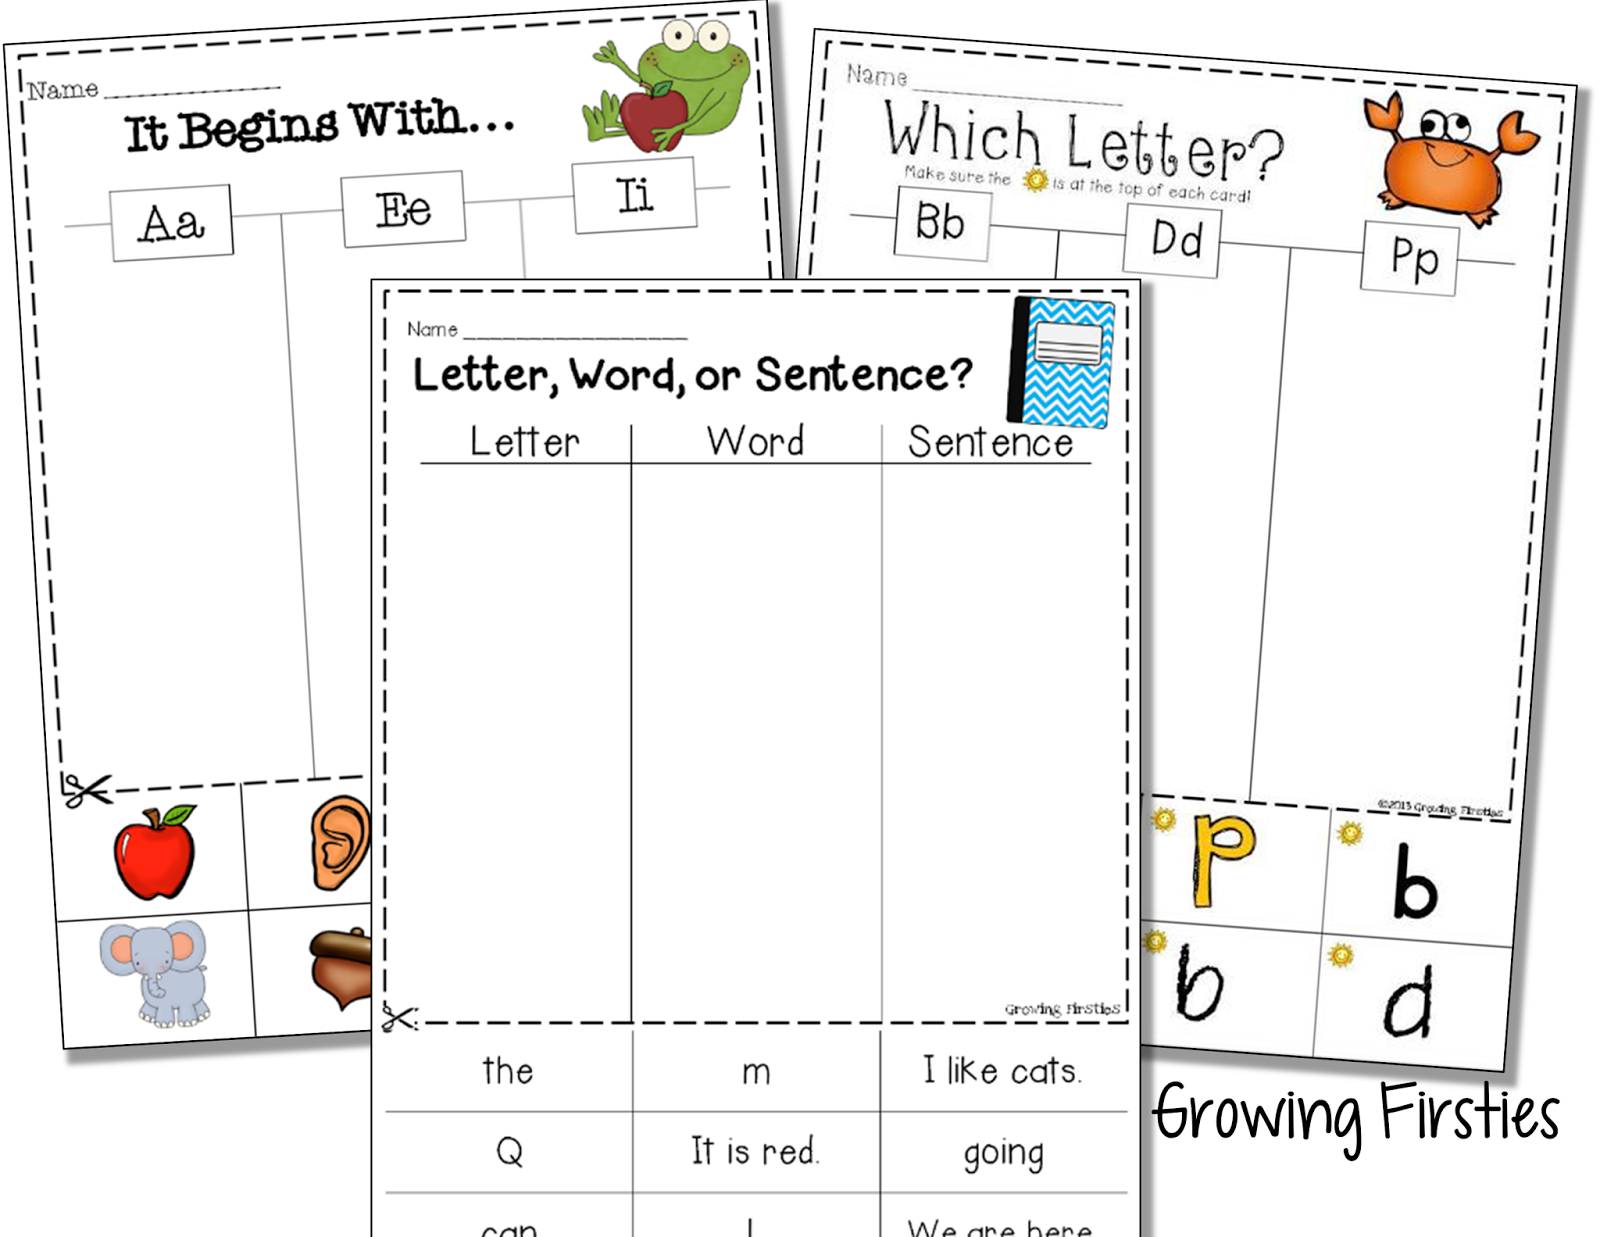 nine letter words common crunch september amp a freebie growing firsties 23782 | Slide1